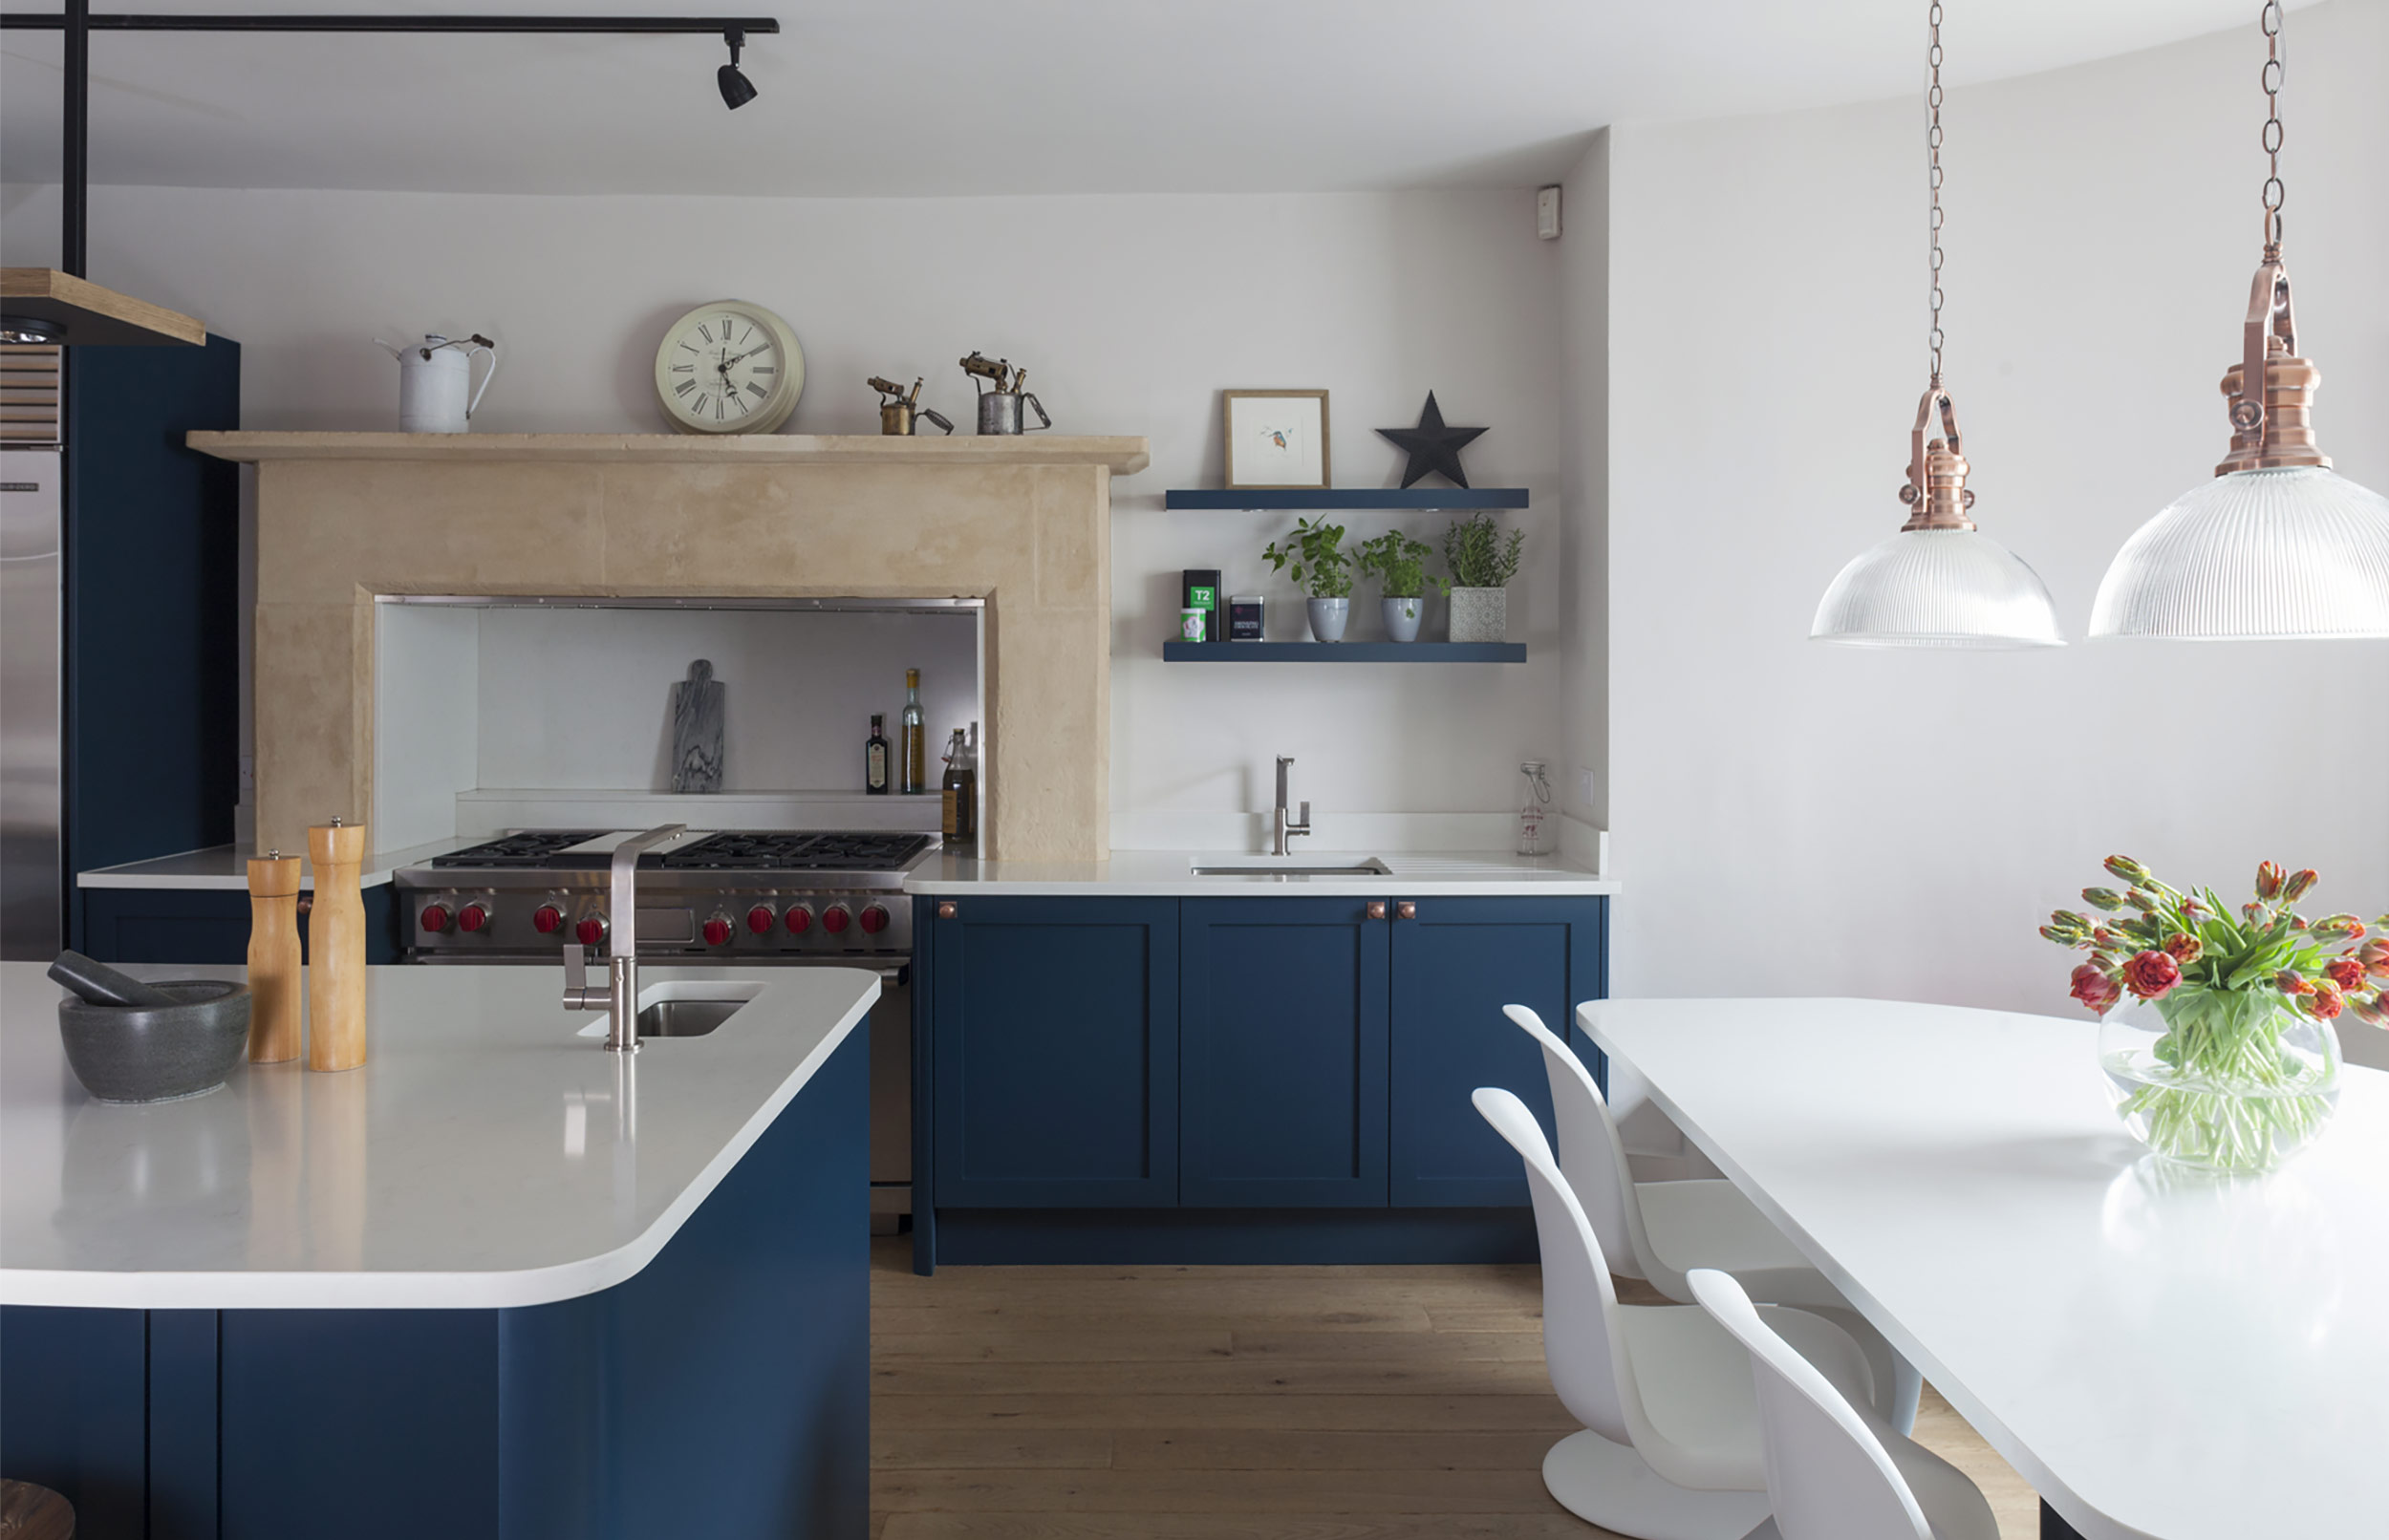 Iconic Bespoke Kitchen Exquisite Detail with Blue Cupboards and White Tops